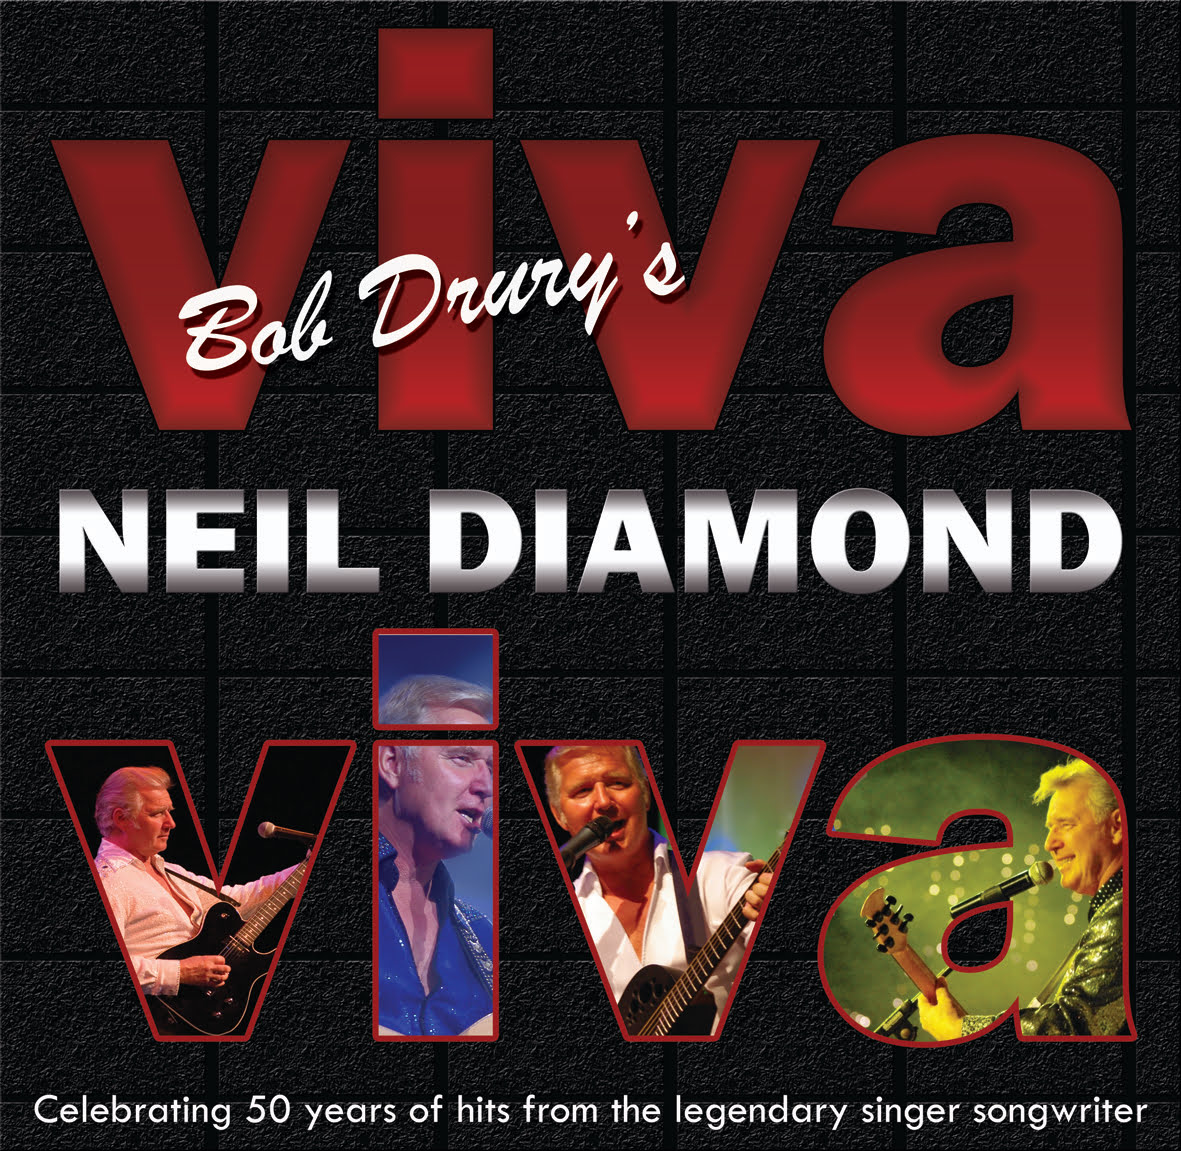 Bob Drury Presents...Viva Neil Diamond